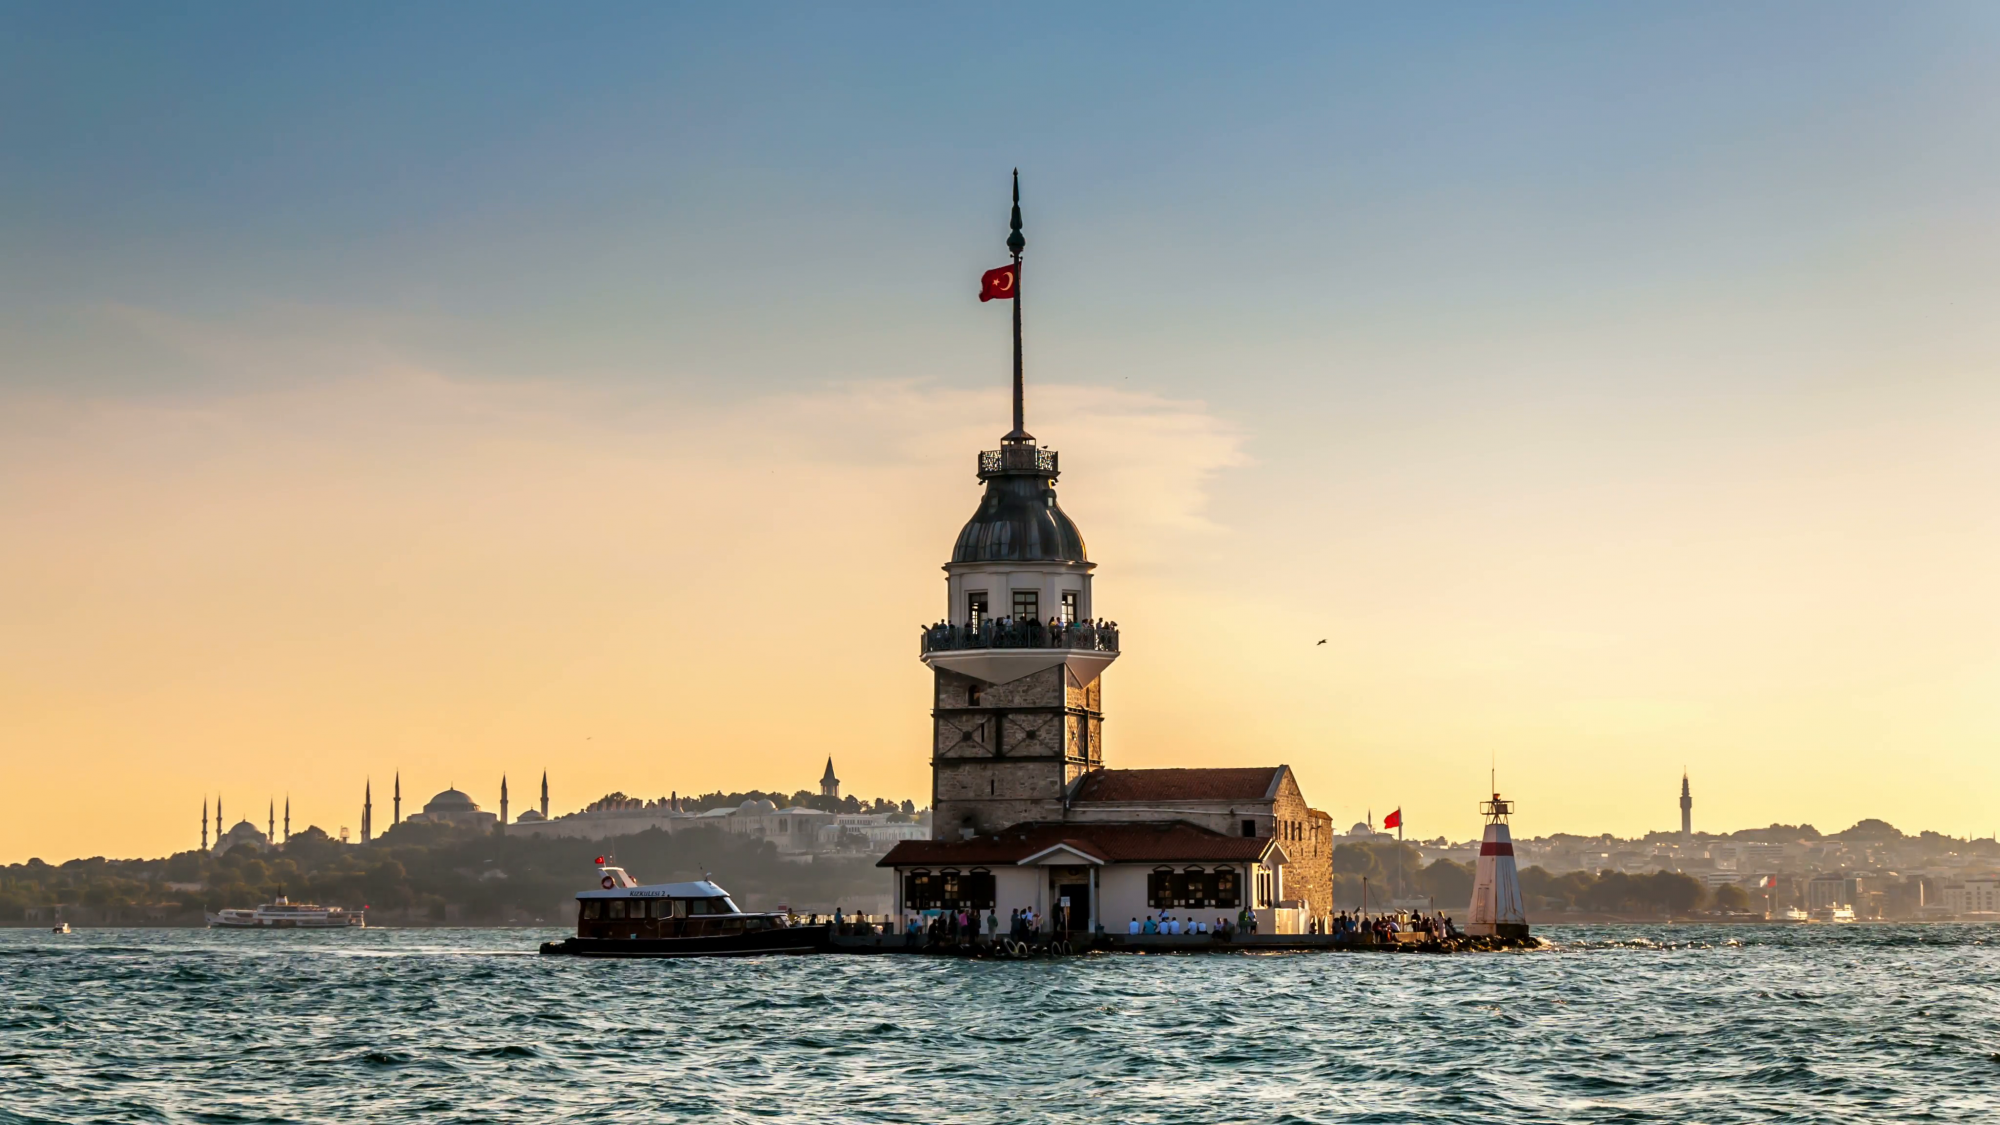 Istanbul – Where to go? A Quickview and Tourism Guide